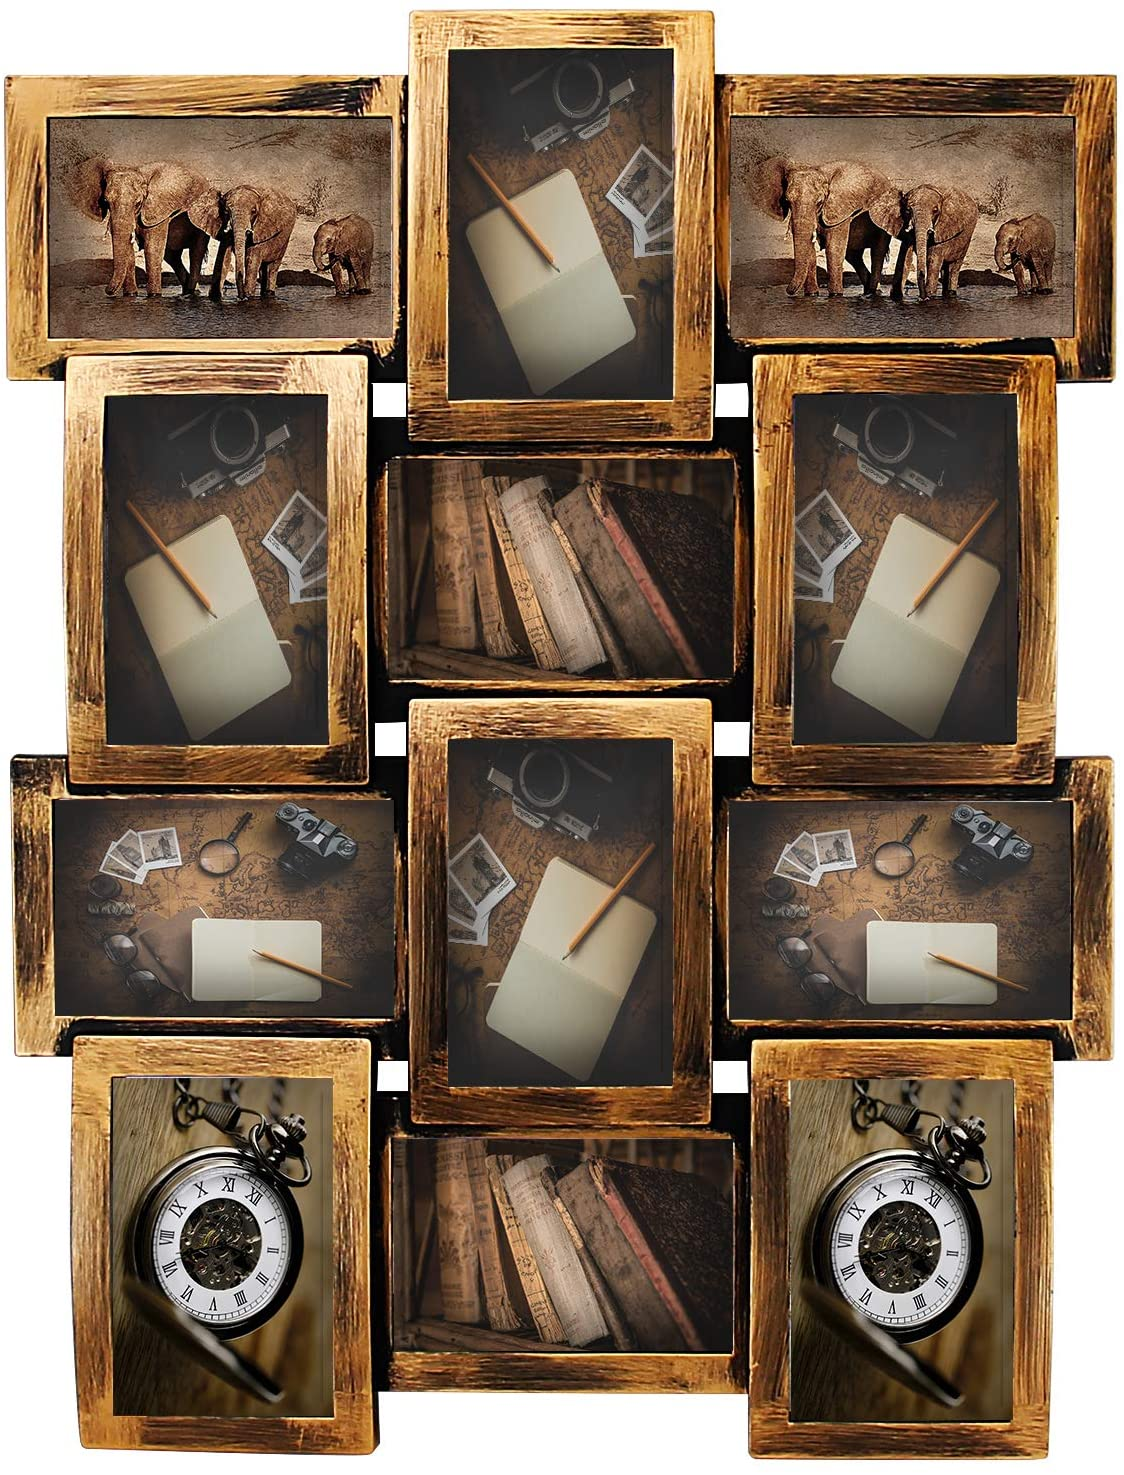 Jerry & Maggie - Photo Frame 23X18 Retro Bronze Finish PVC Picture Frame Selfie Gallery Collage Wall Hanging for 6x4 Photo - 12 Photo Sockets - Classic Loyalty Style - Wall Mounting Design